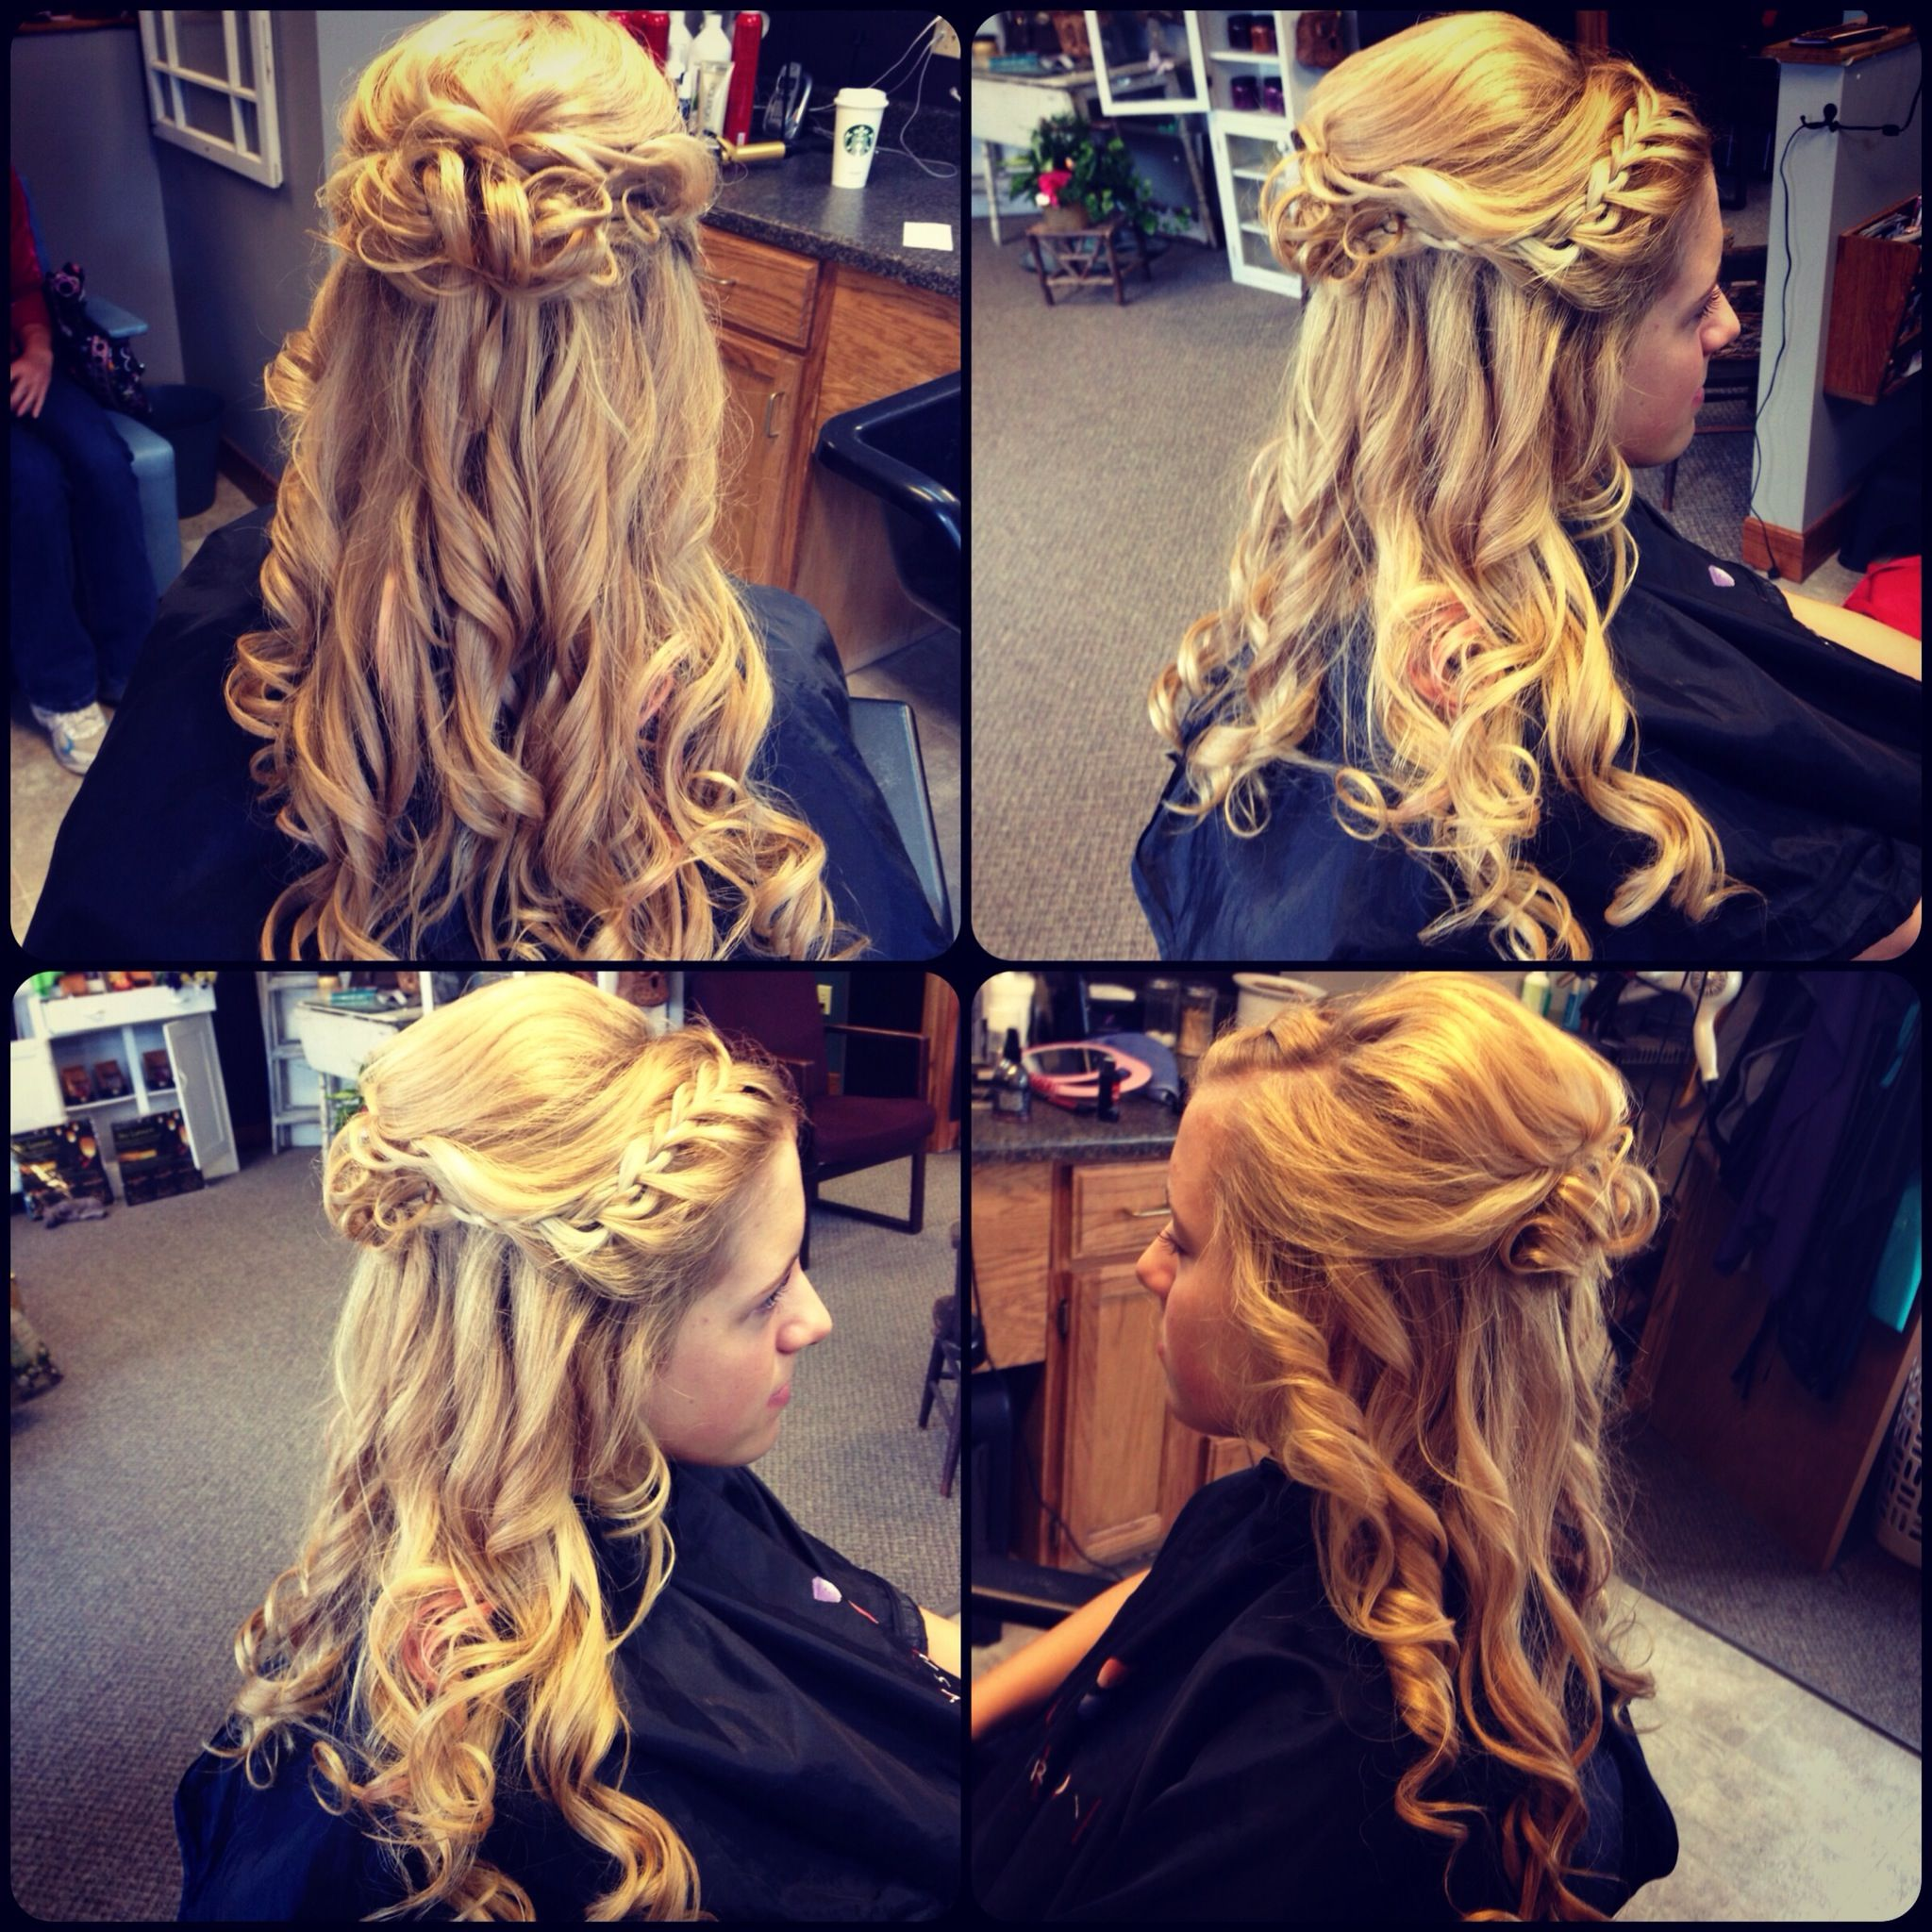 Prom updo upstyle hai pinned up curls curled braid half up ...